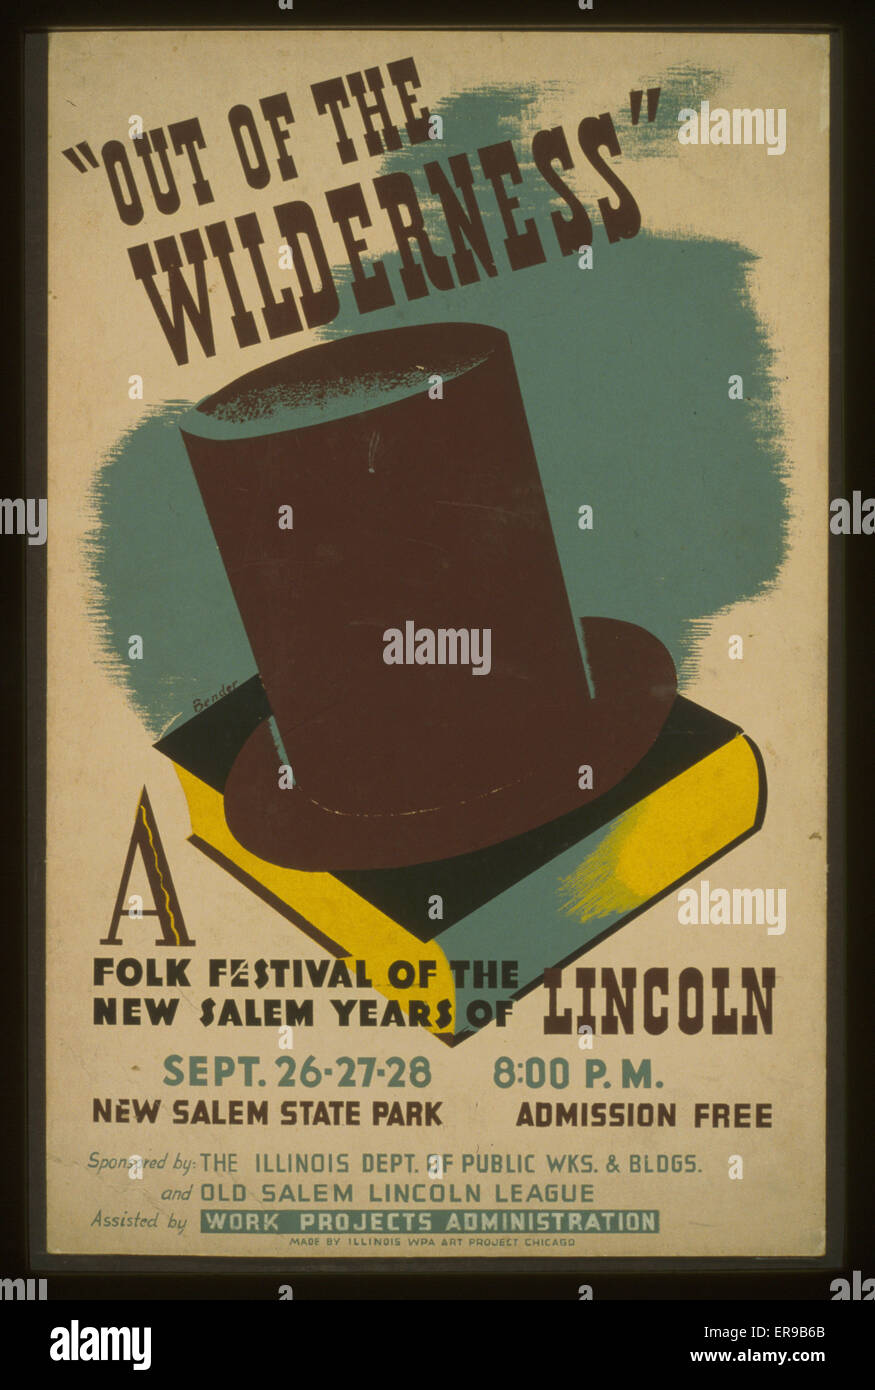 Out of the wilderness A folk festival of the New Salem years of Lincoln . Poster showing a book and a stovepipe - Stock Image